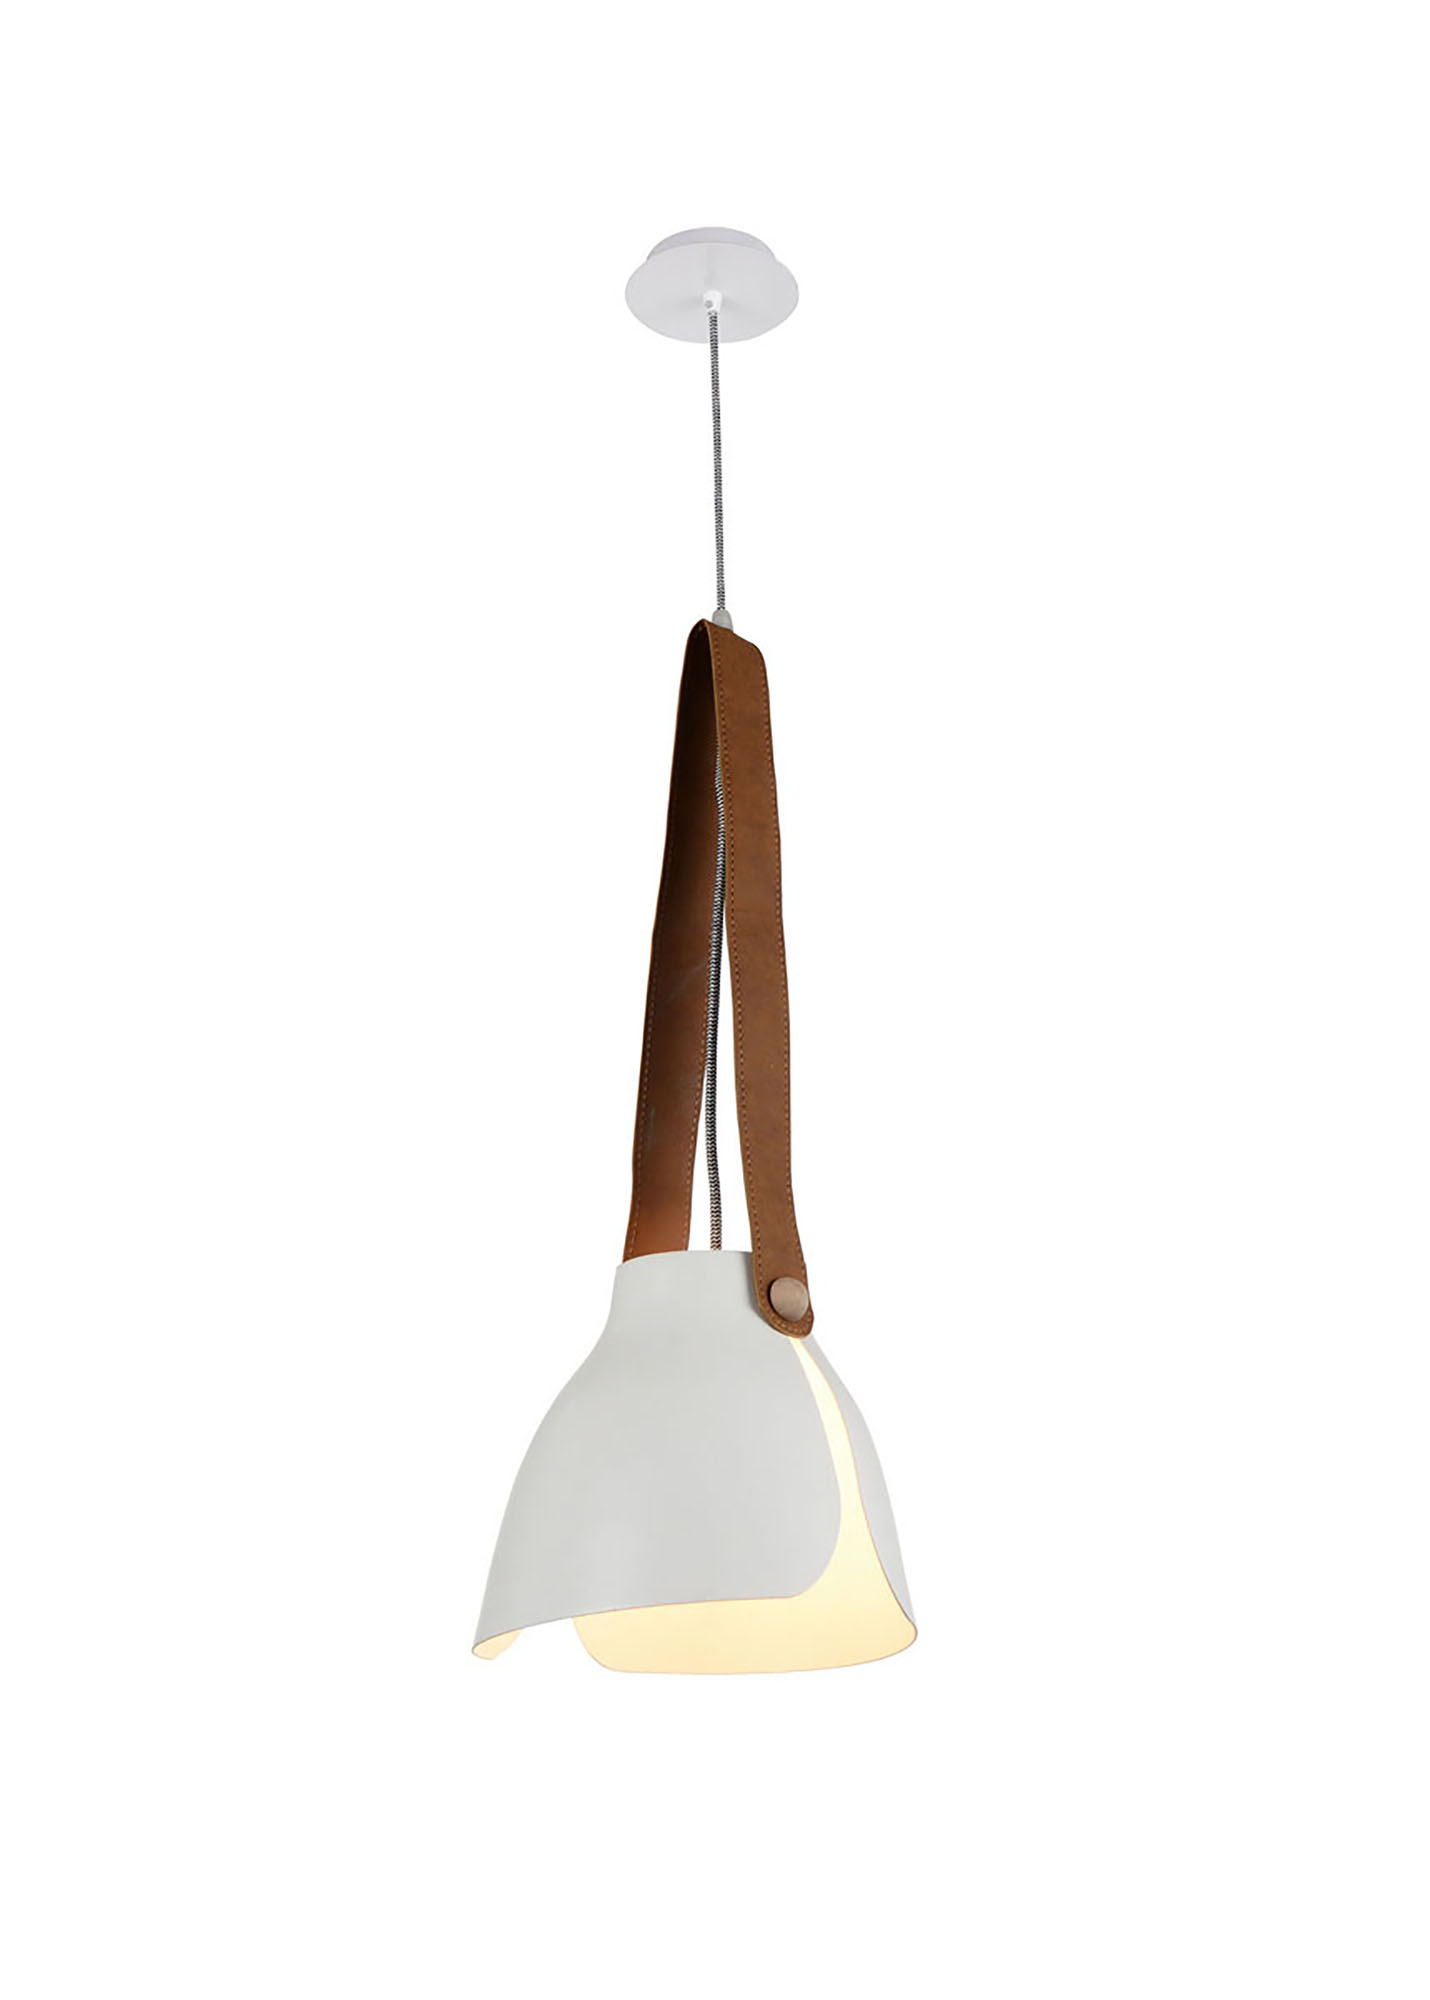 Swiss Ceiling Lights Mantra Single Pendant